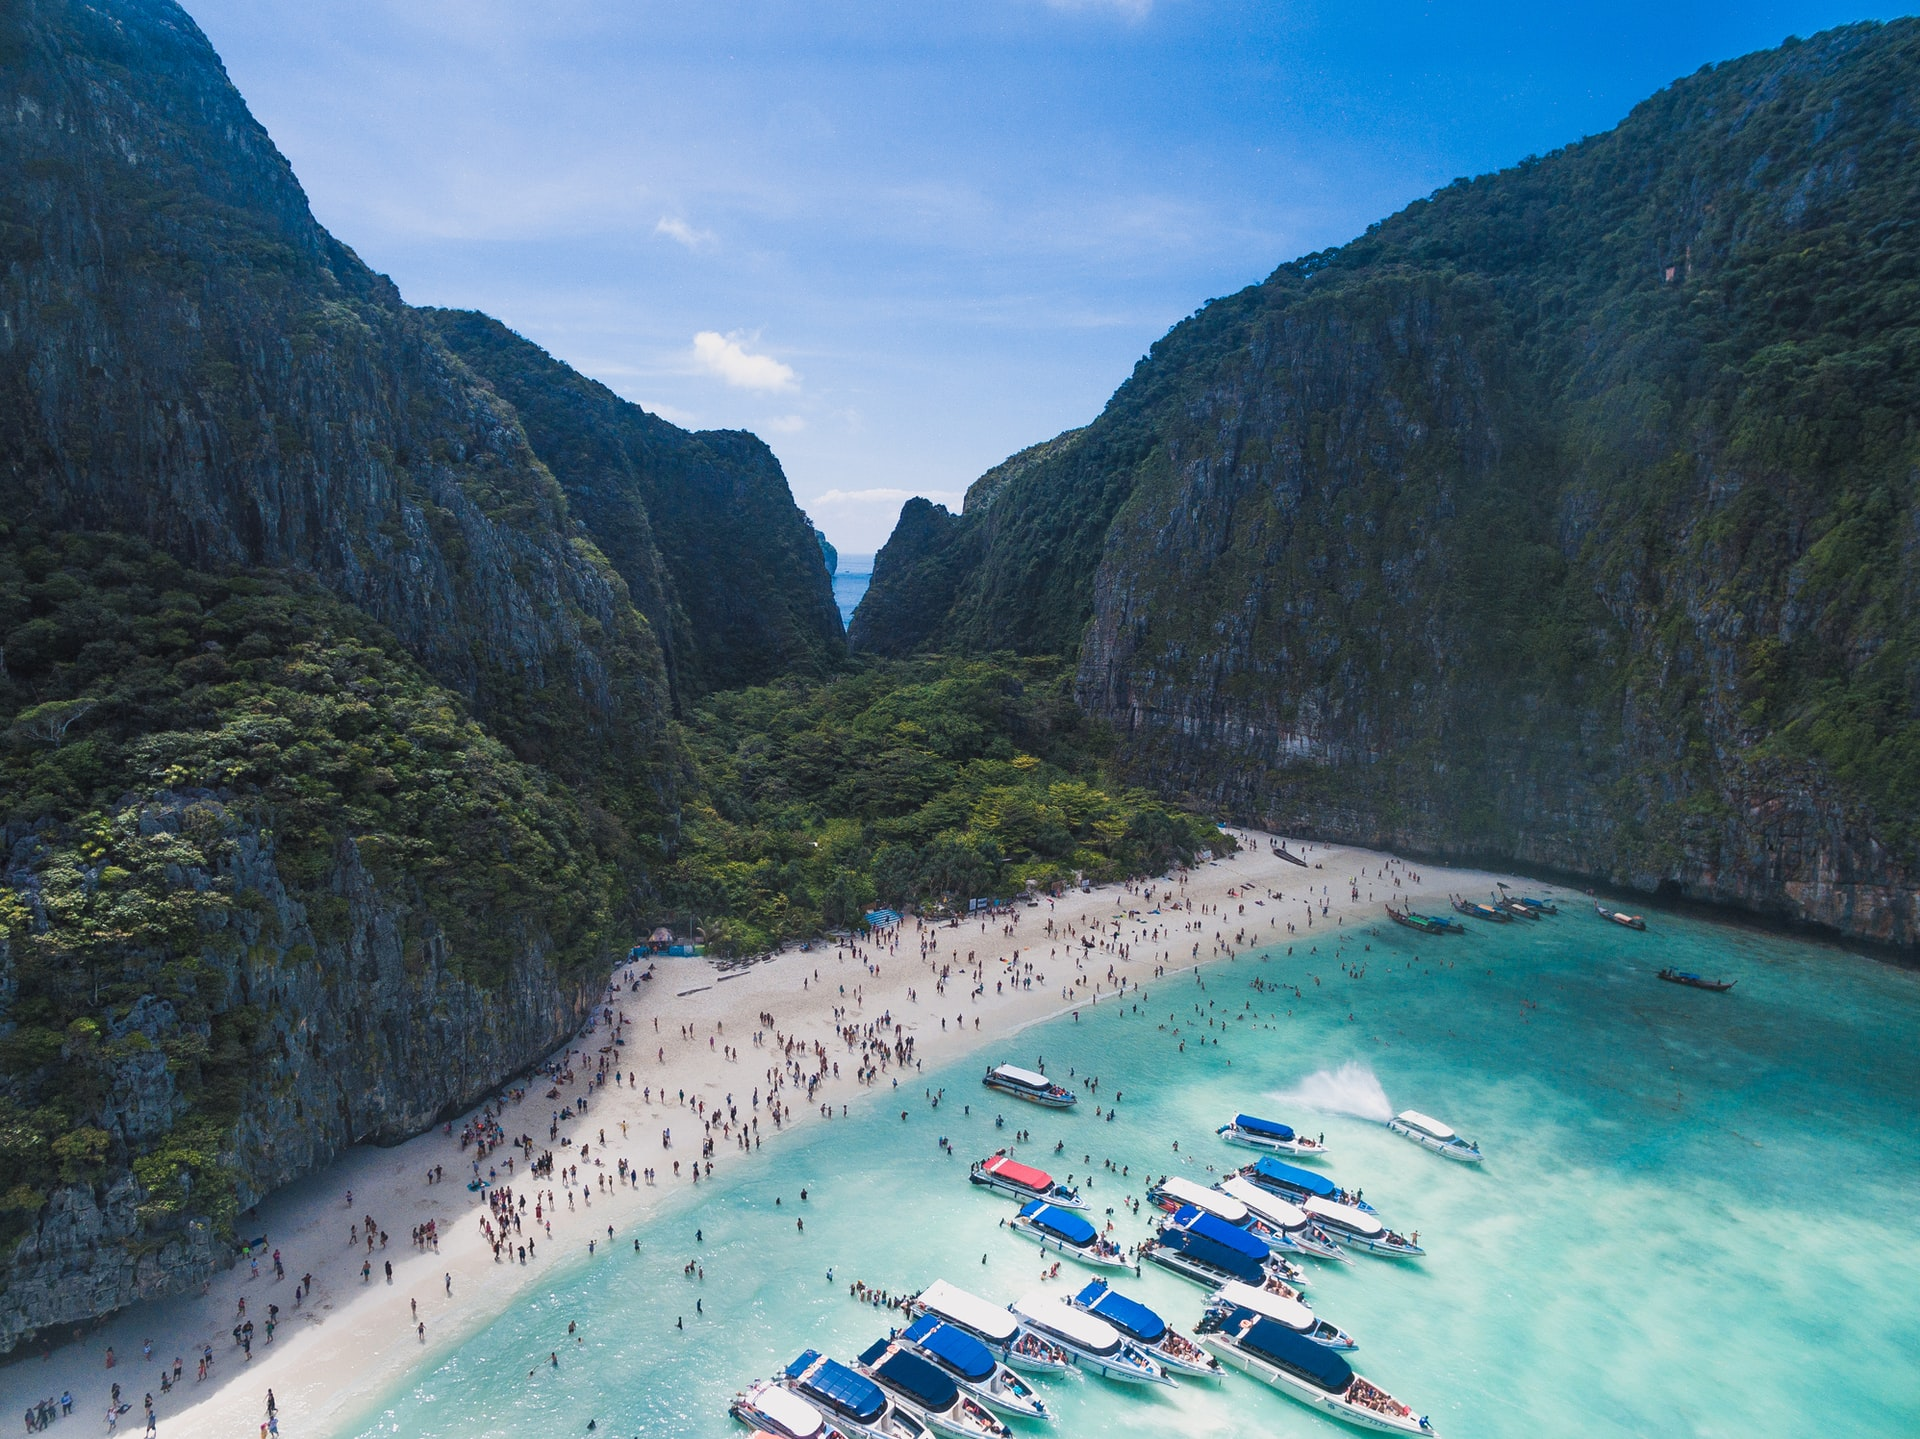 an aerial view of Maya Bay in Thailand with several boats in the water and a crowd on the beach